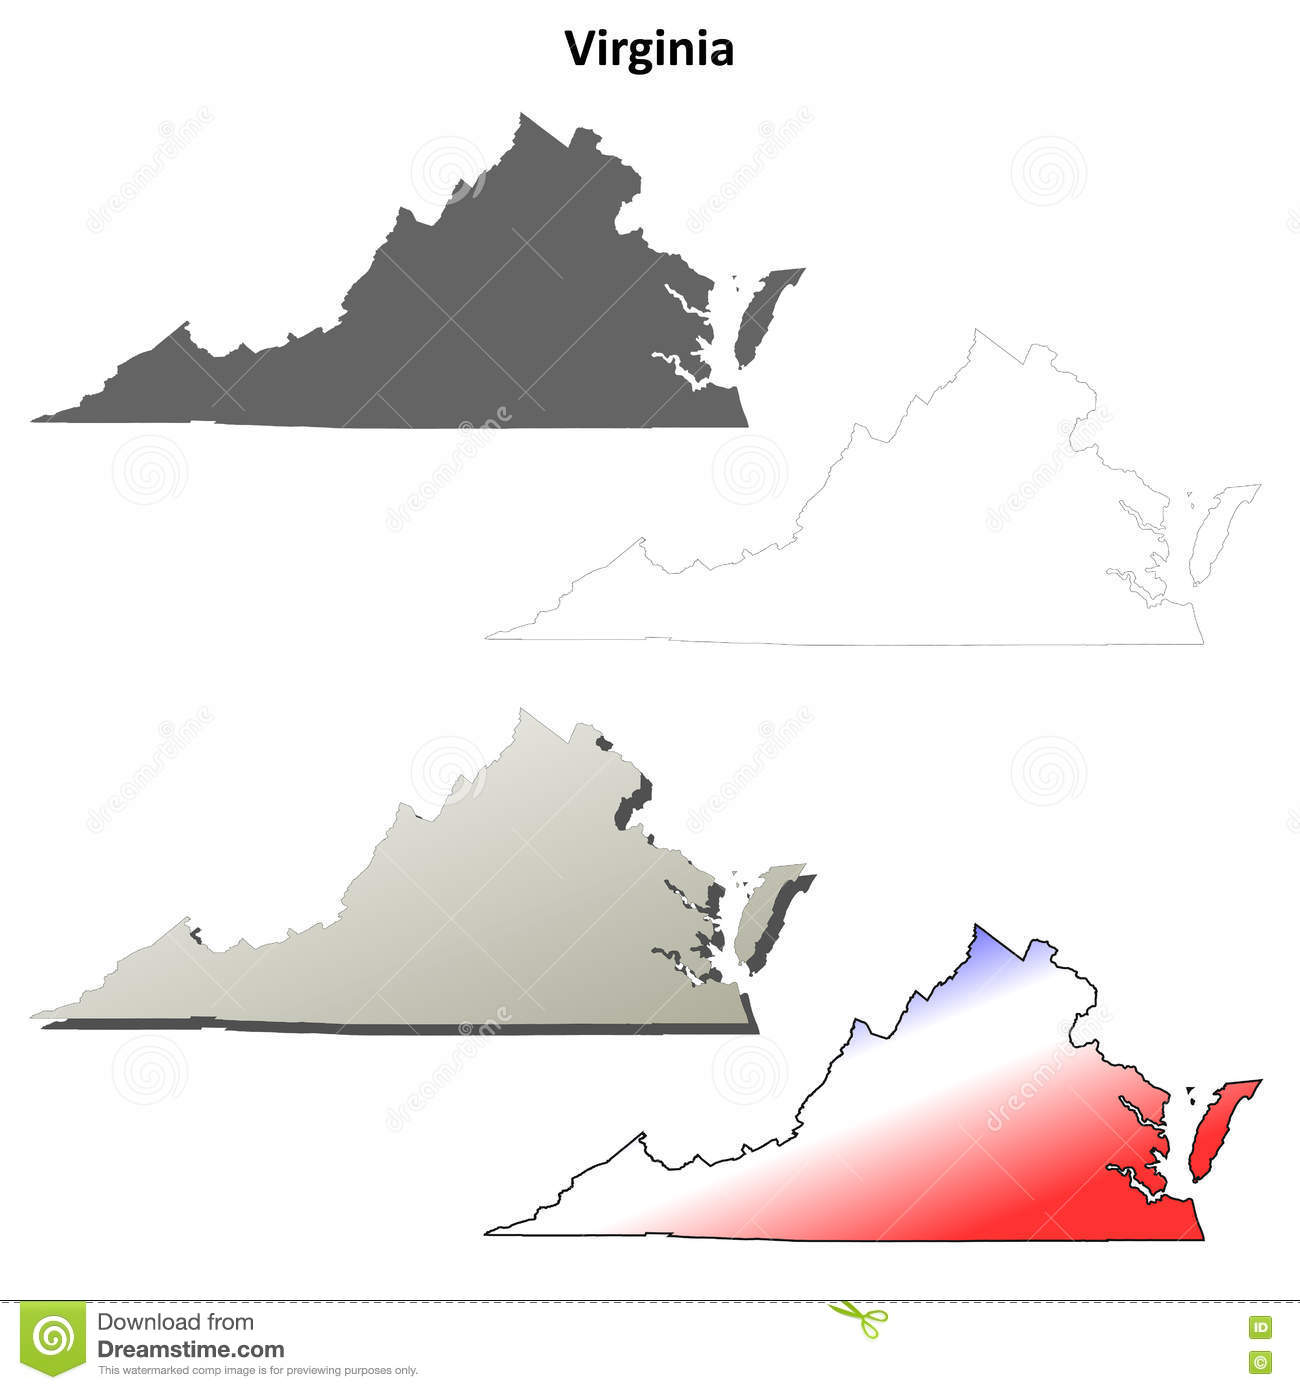 Outline Map Of Virginia.Virginia Outline Map Set Stock Vector Illustration Of America